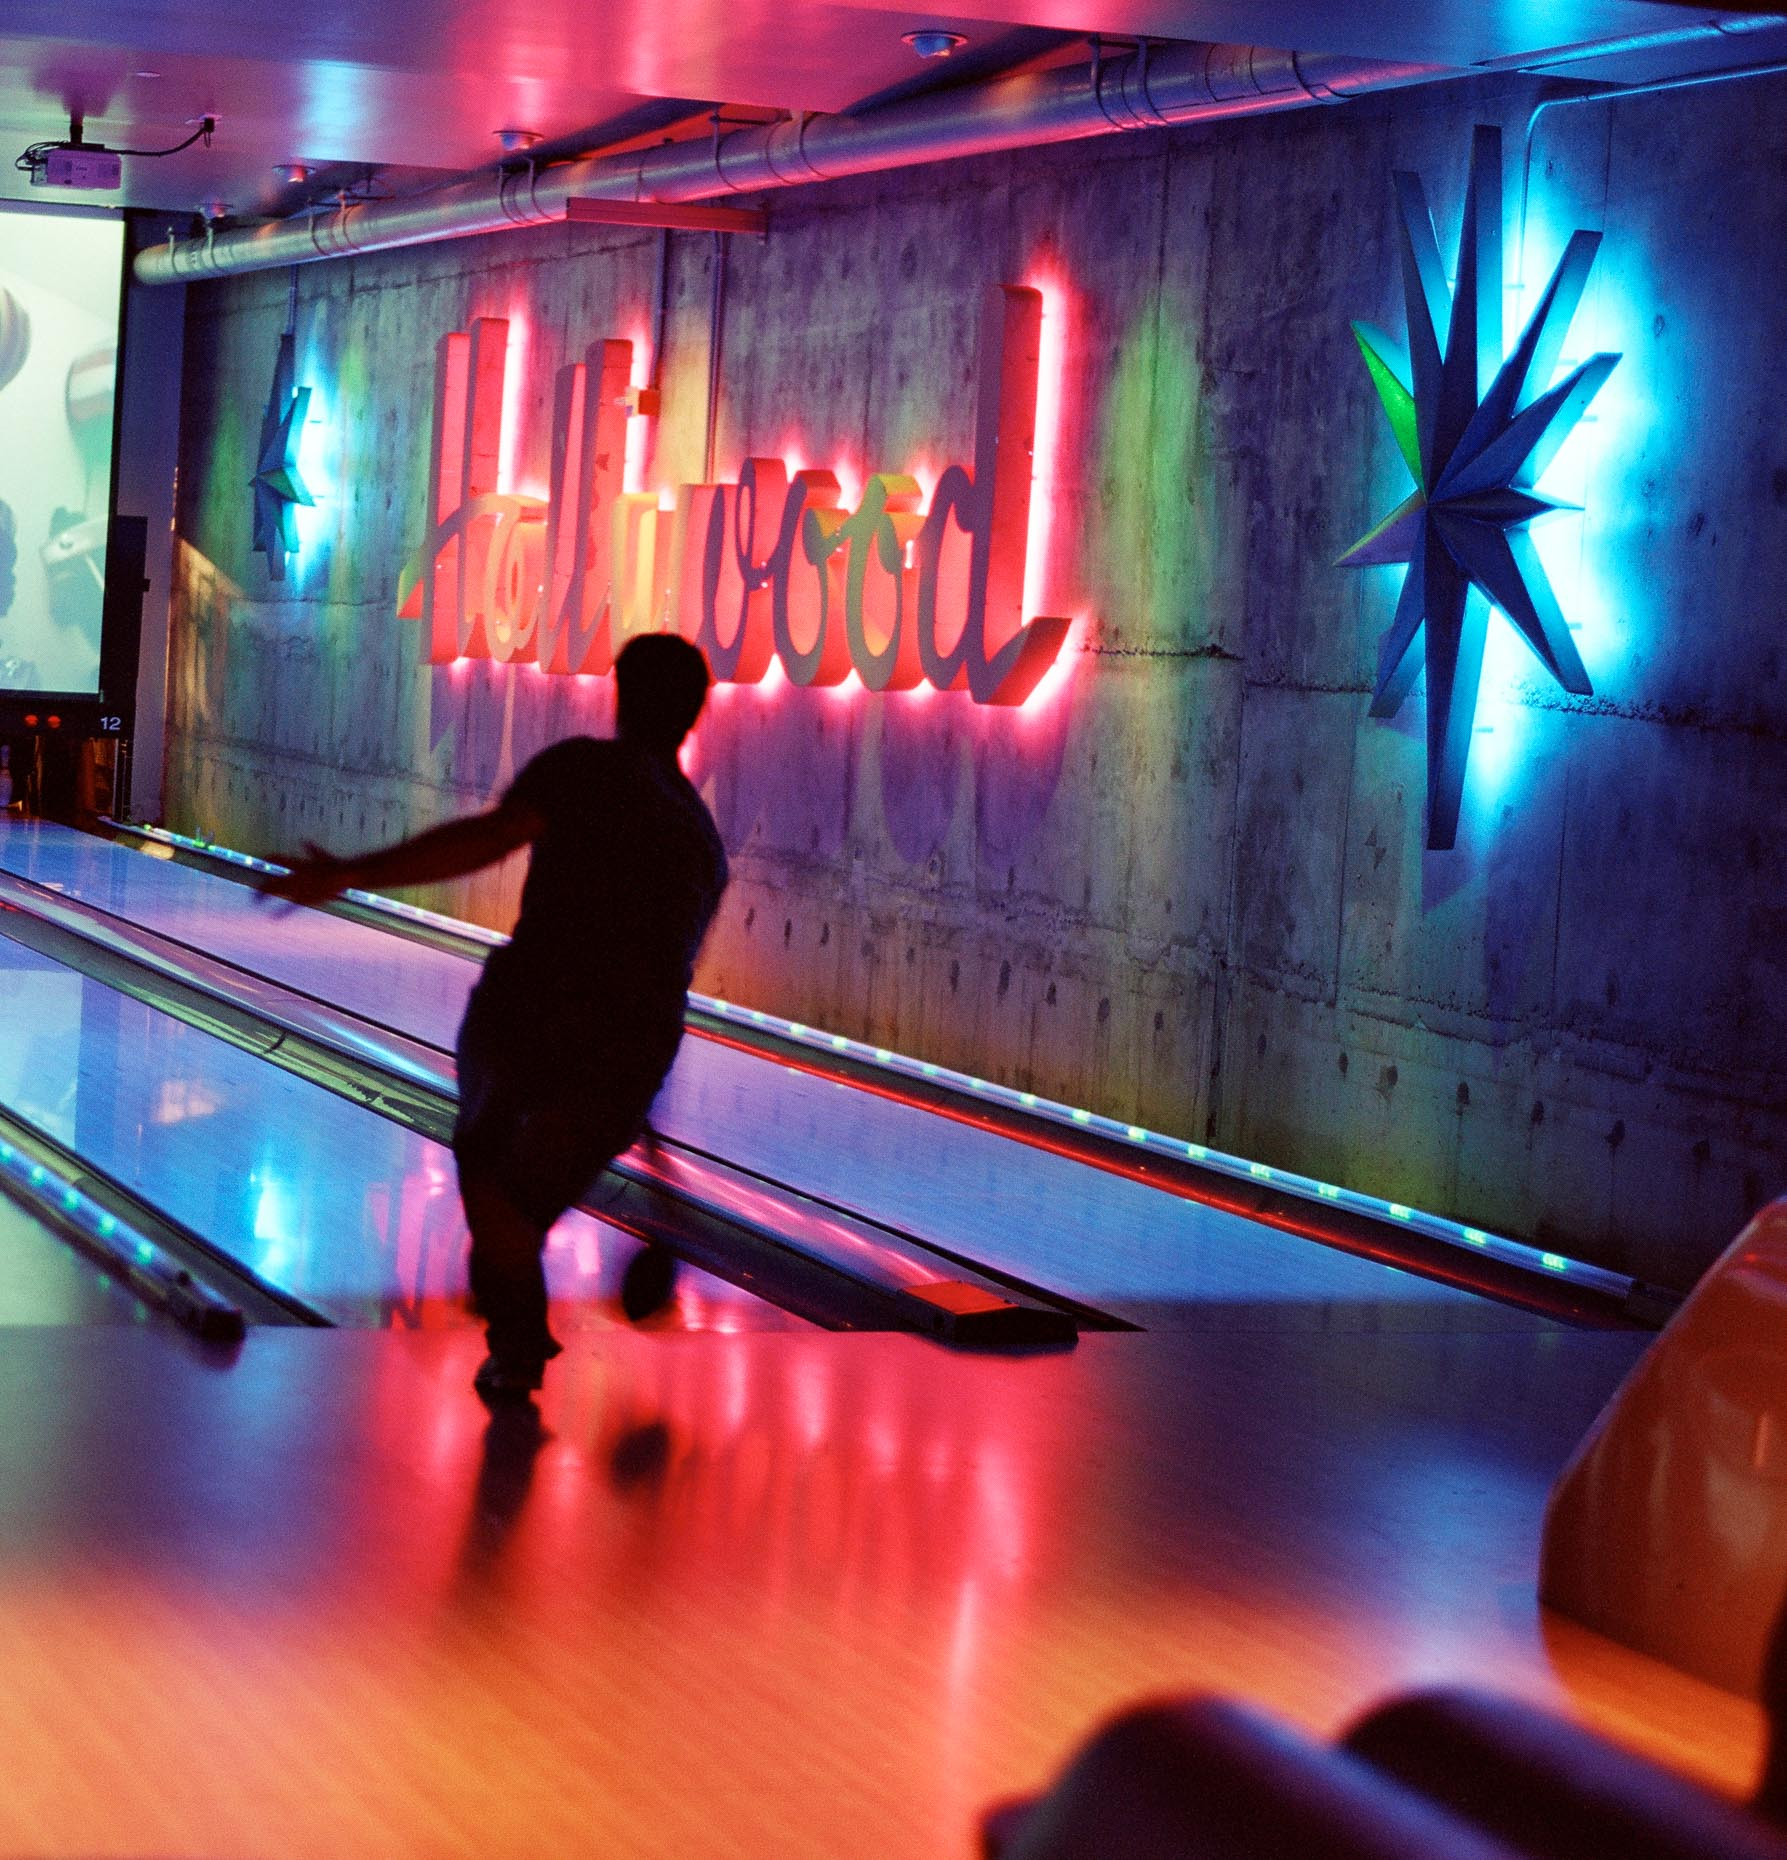 Man bowling in bowling alley with HOLLYWOOD sign on wall by David Zaitz